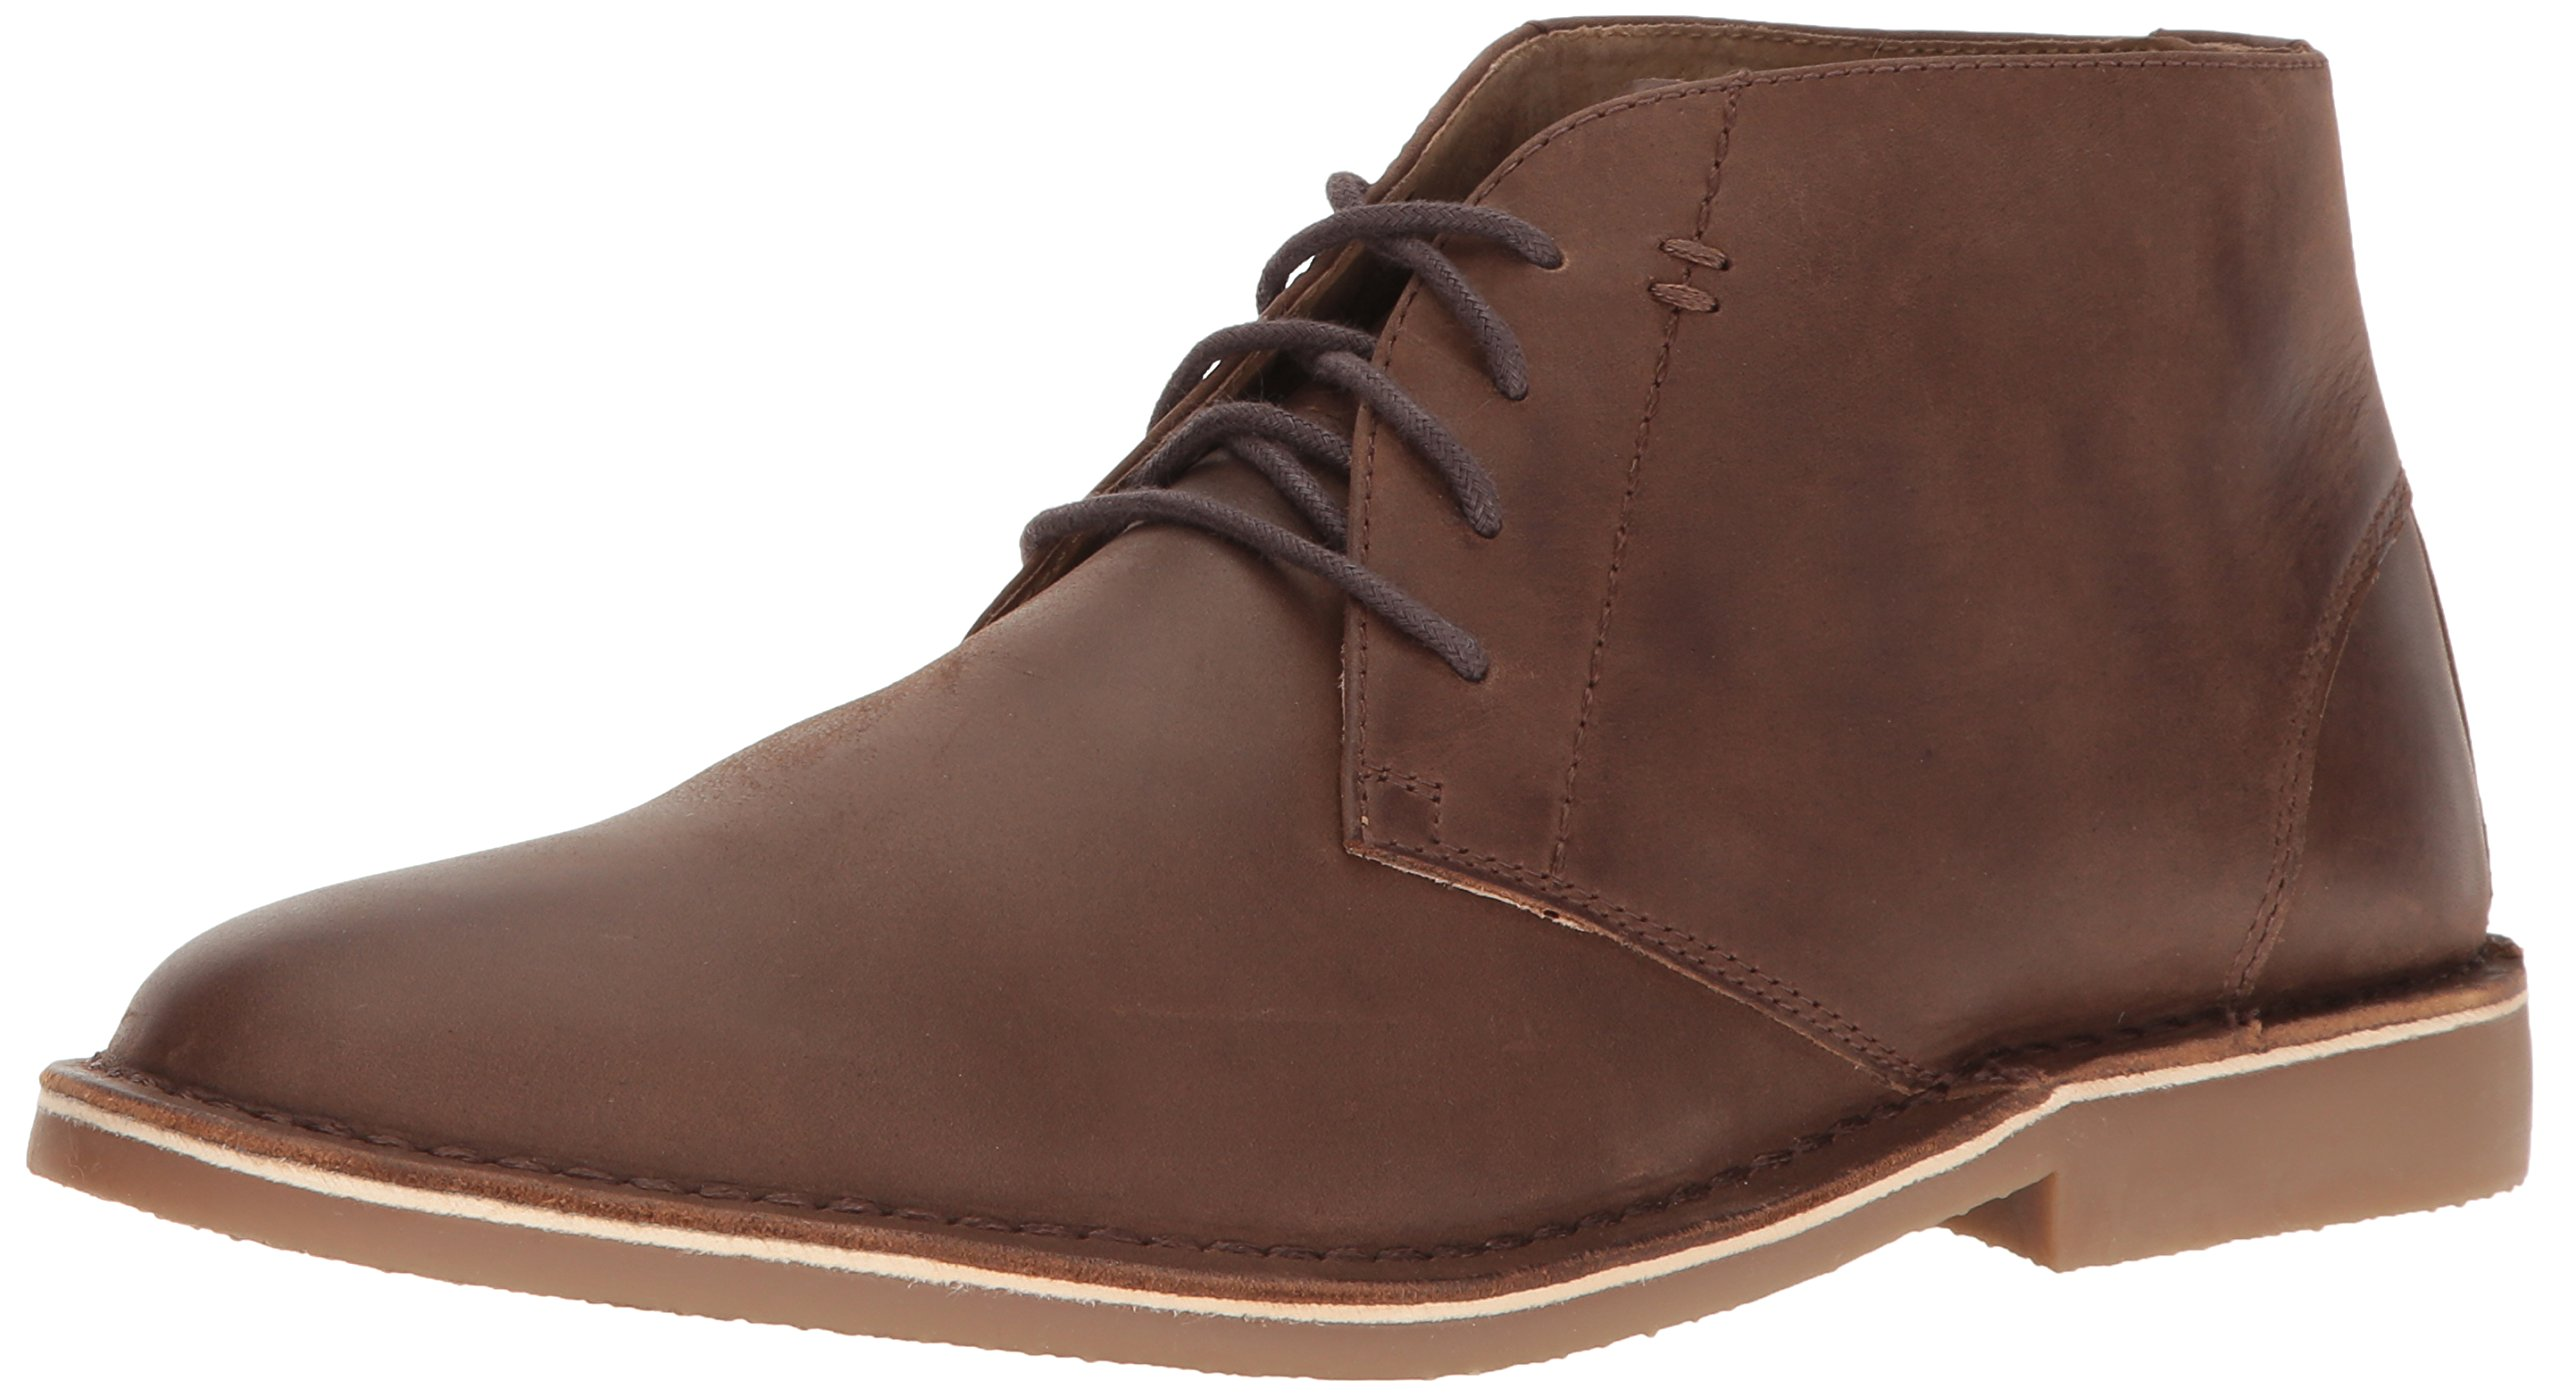 Nunn Bush Men's Galloway Chukka Boot, Tan Chamois, 10.5 M US